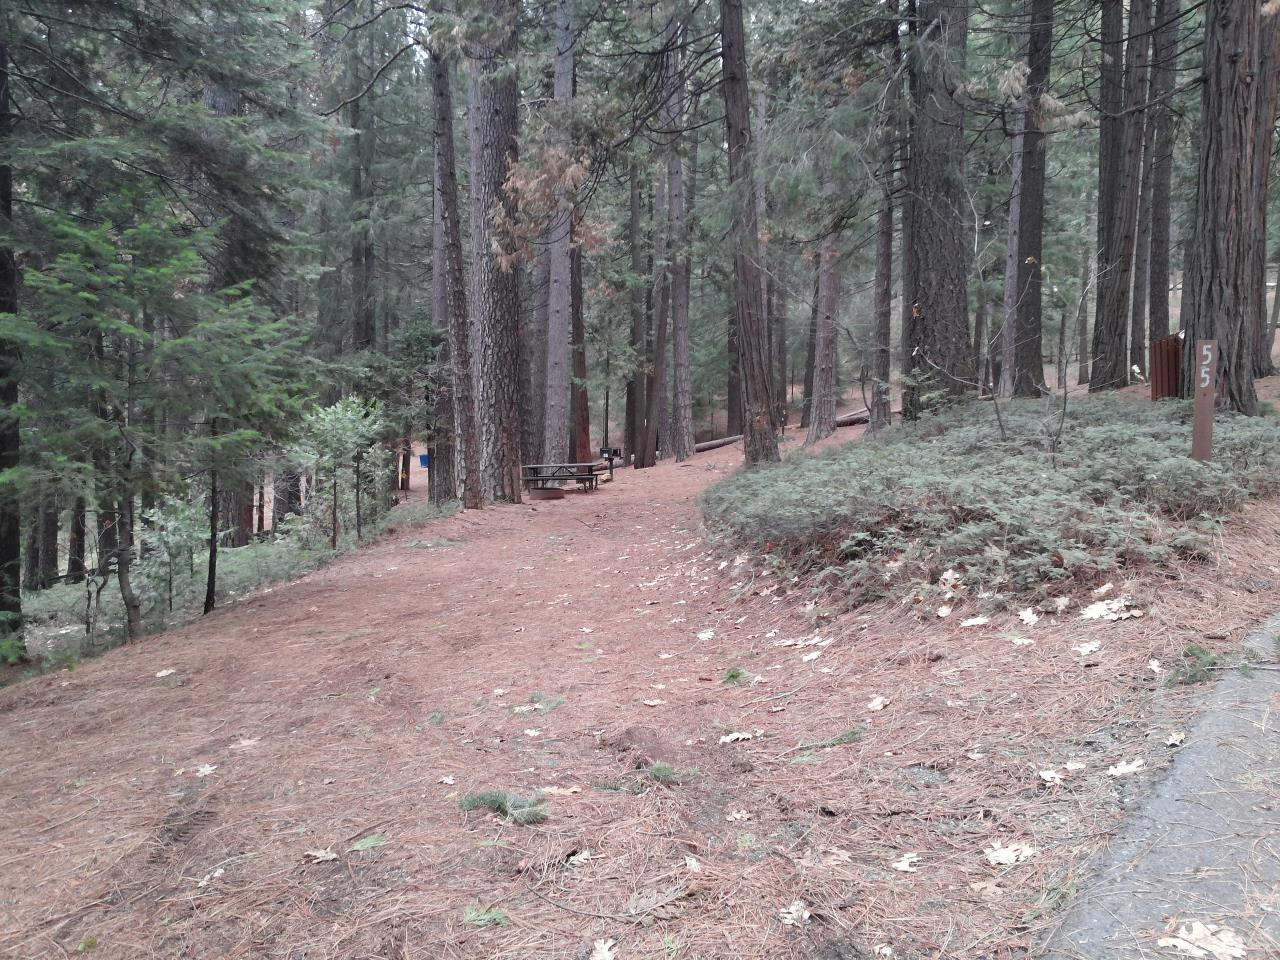 Sierra Spur site #55 - 3 vehicles or 24' MH- semi-shade, level, tight entrance due to trees